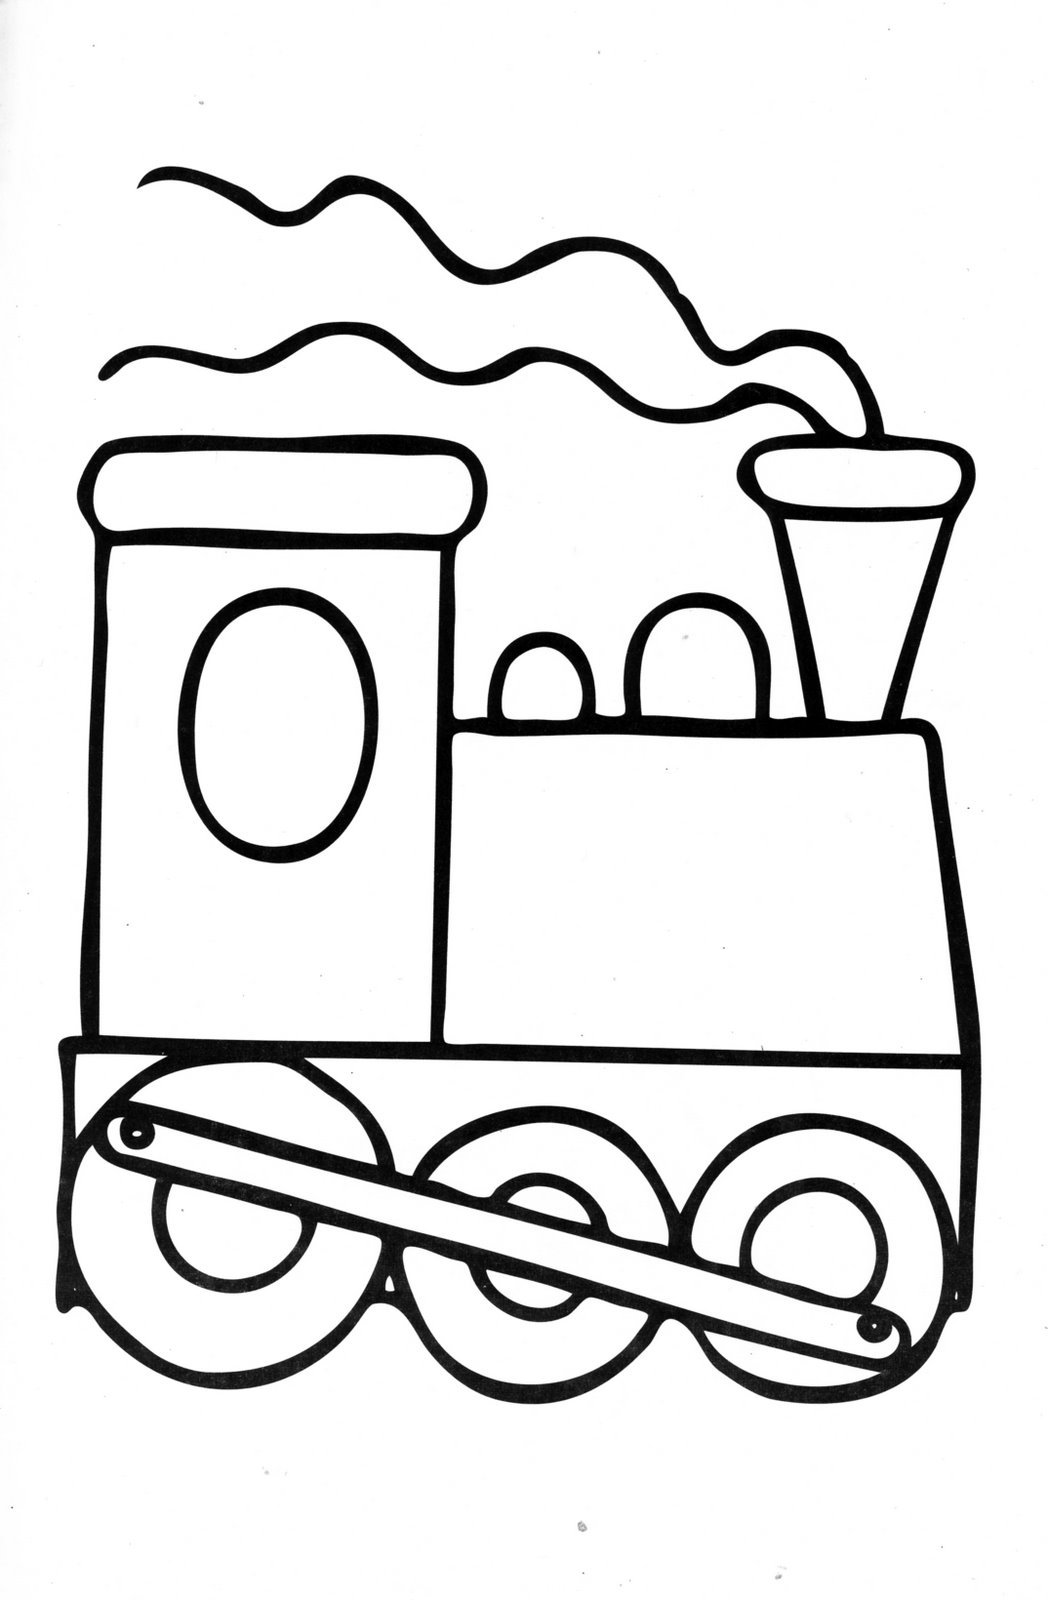 1048x1600 Simple Train Engine Coloring Page Coloring Page For Kids